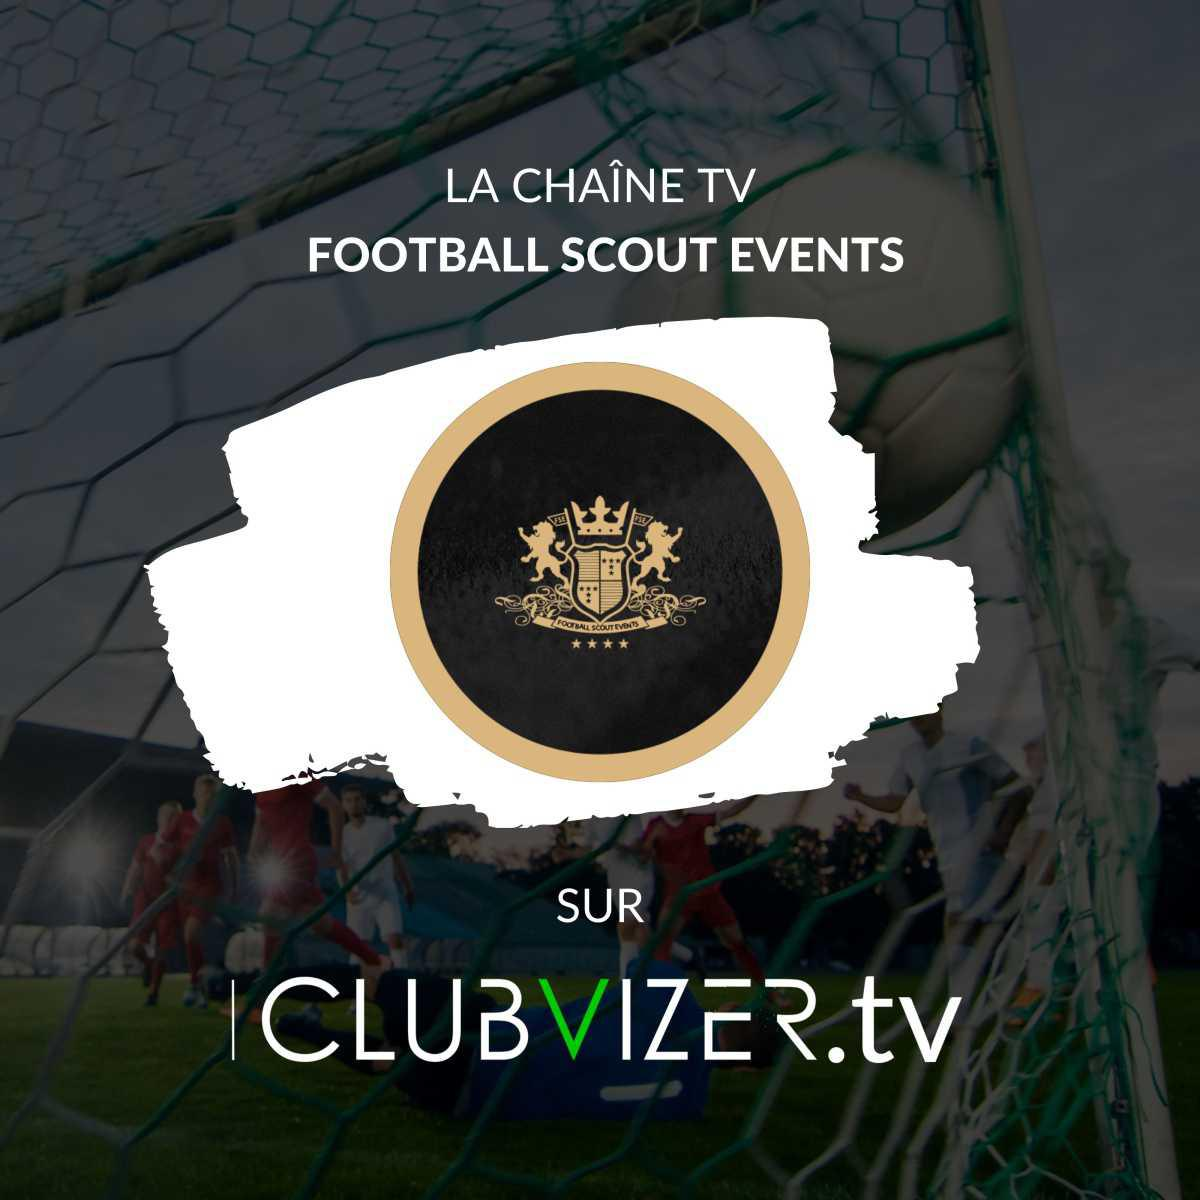 CLUBVIZER x FOOTBALL SCOUT EVENTS